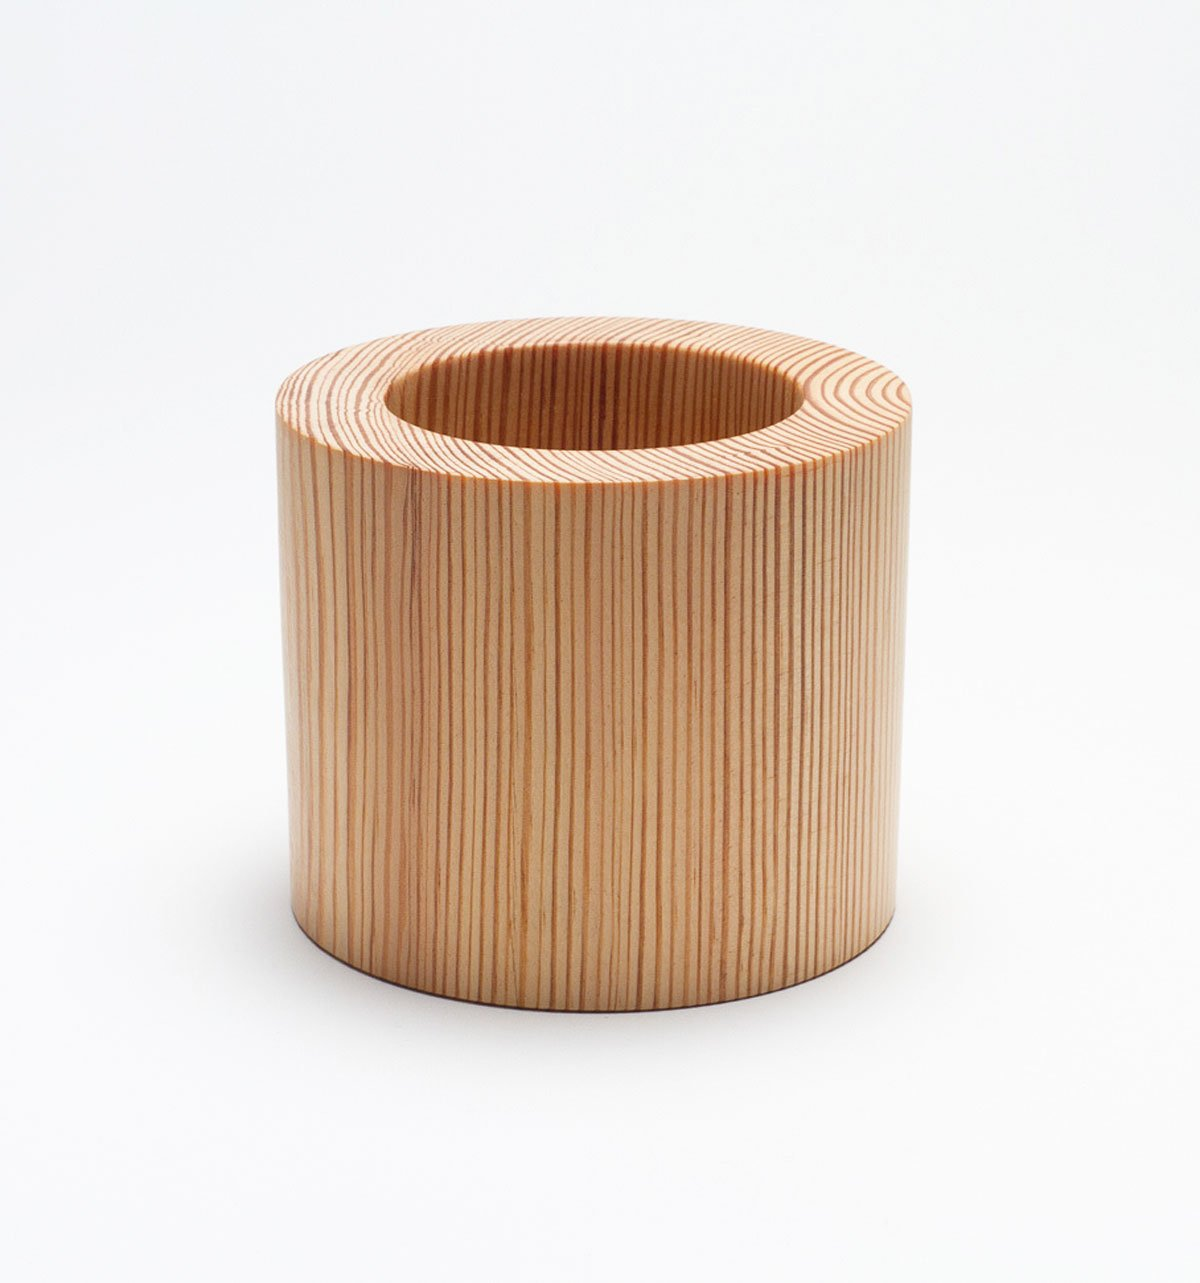 Penpot, Wooden Pencil Holder -24986